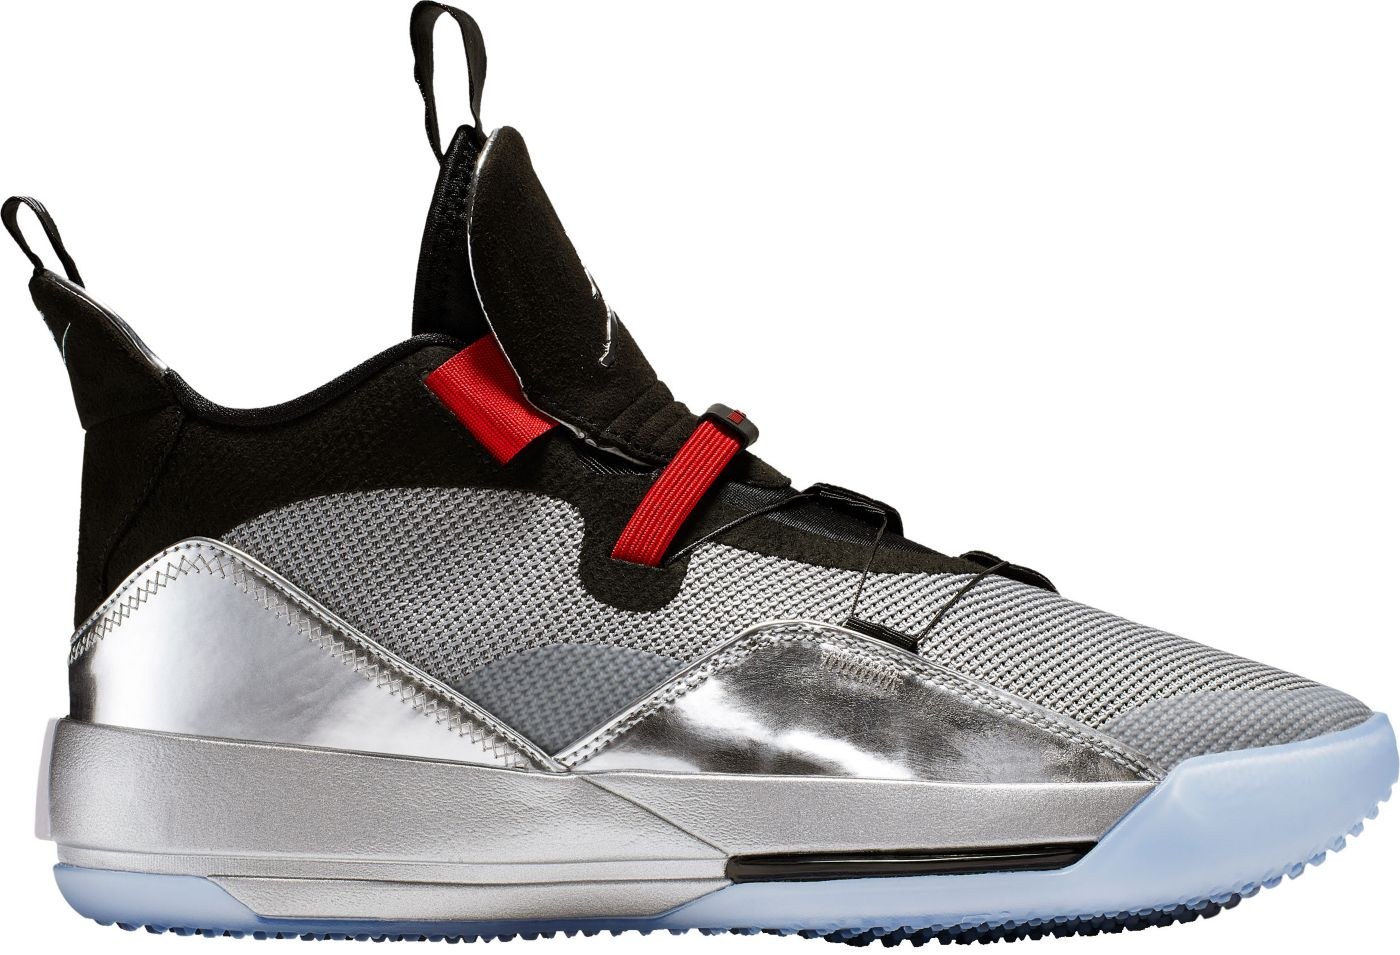 Nike Men's Air Jordan XXXIII Basketball Shoes